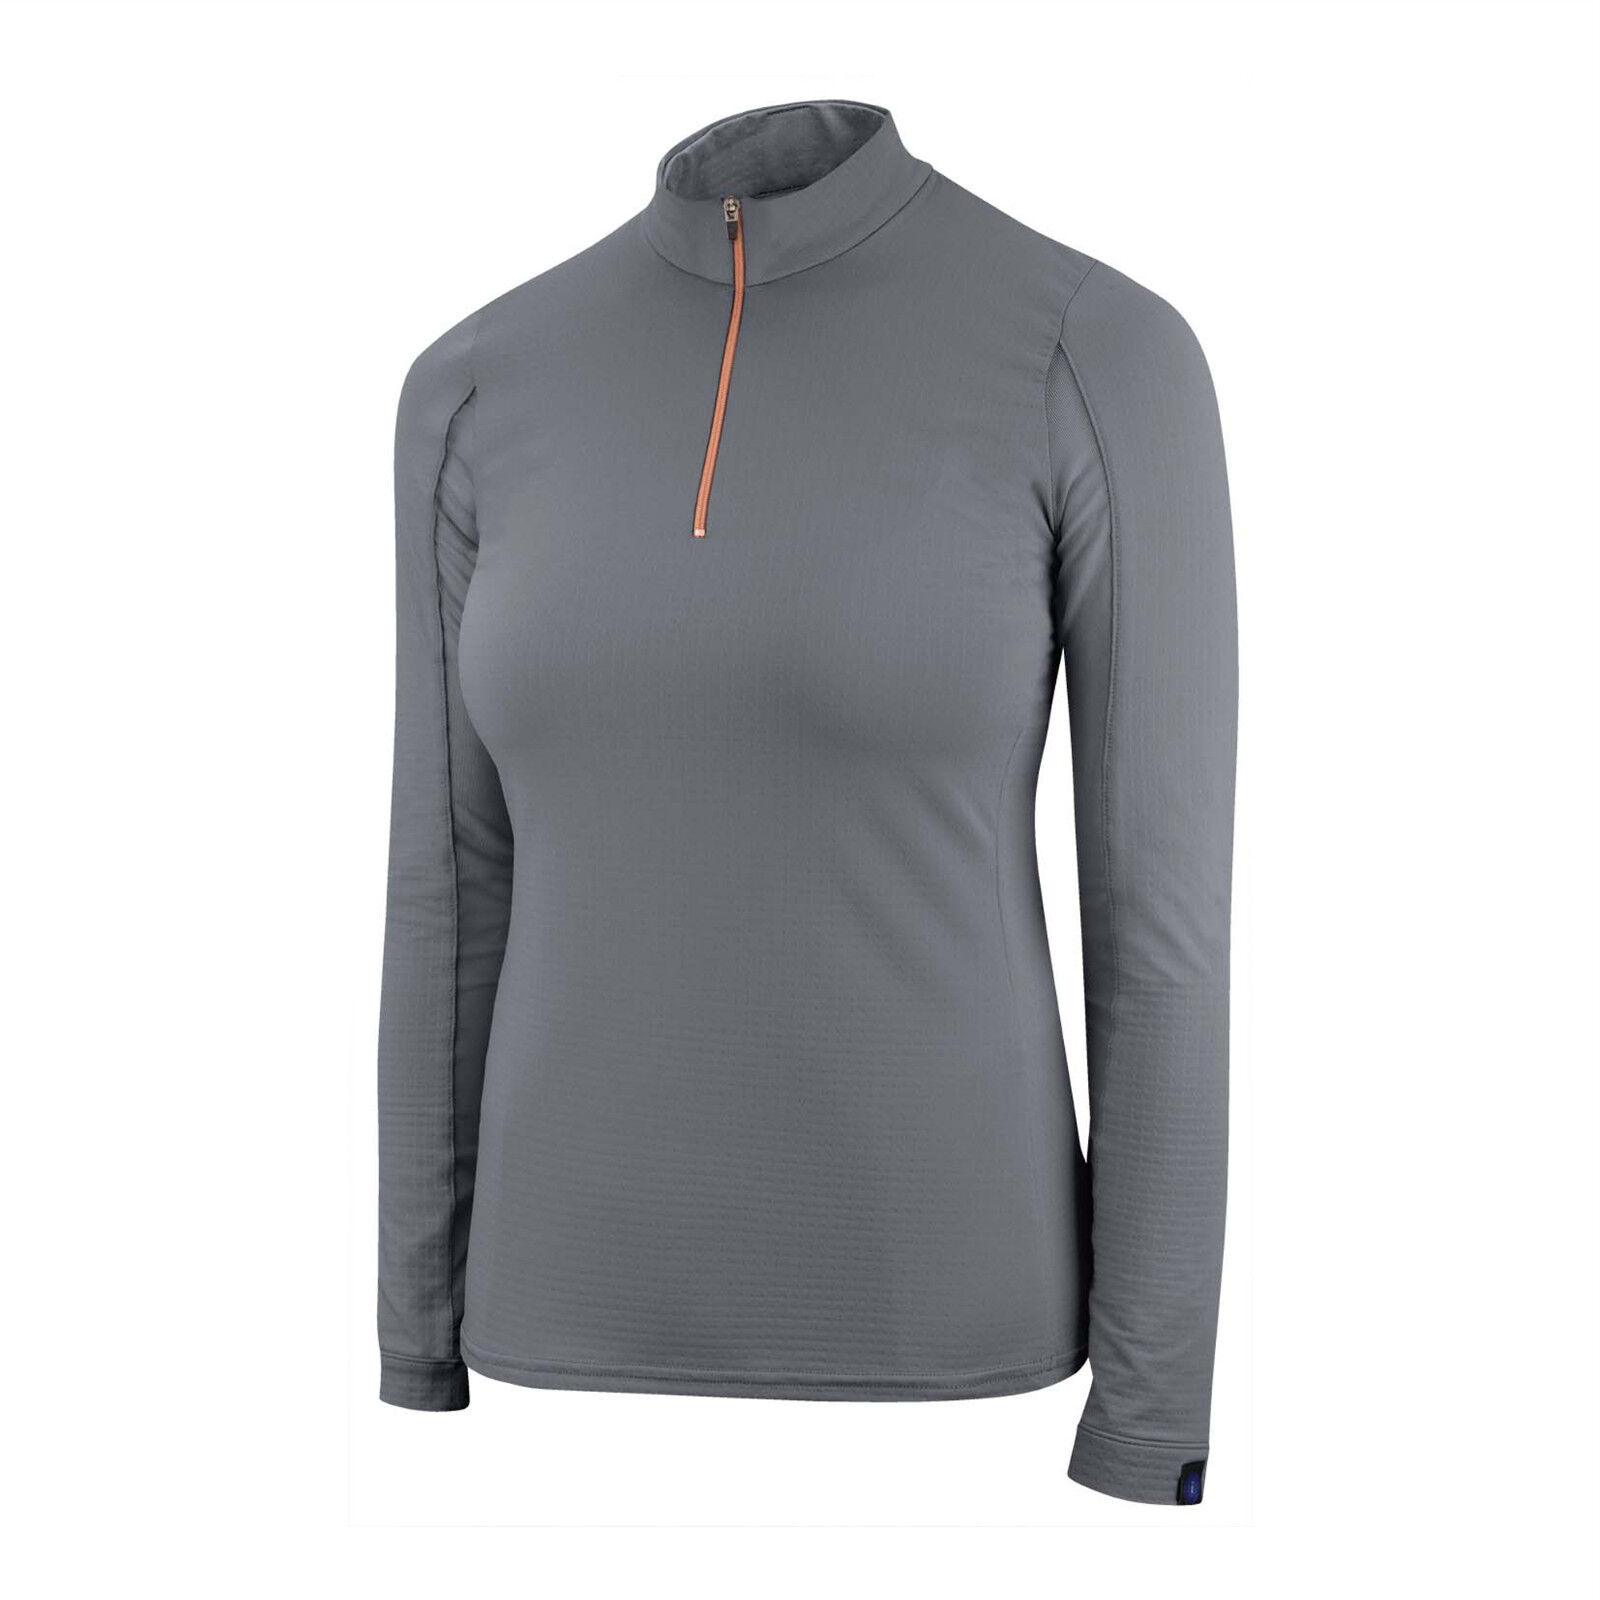 Irideon CoolDown IceFil Long Sleeve Jersey-M-Dove Grey